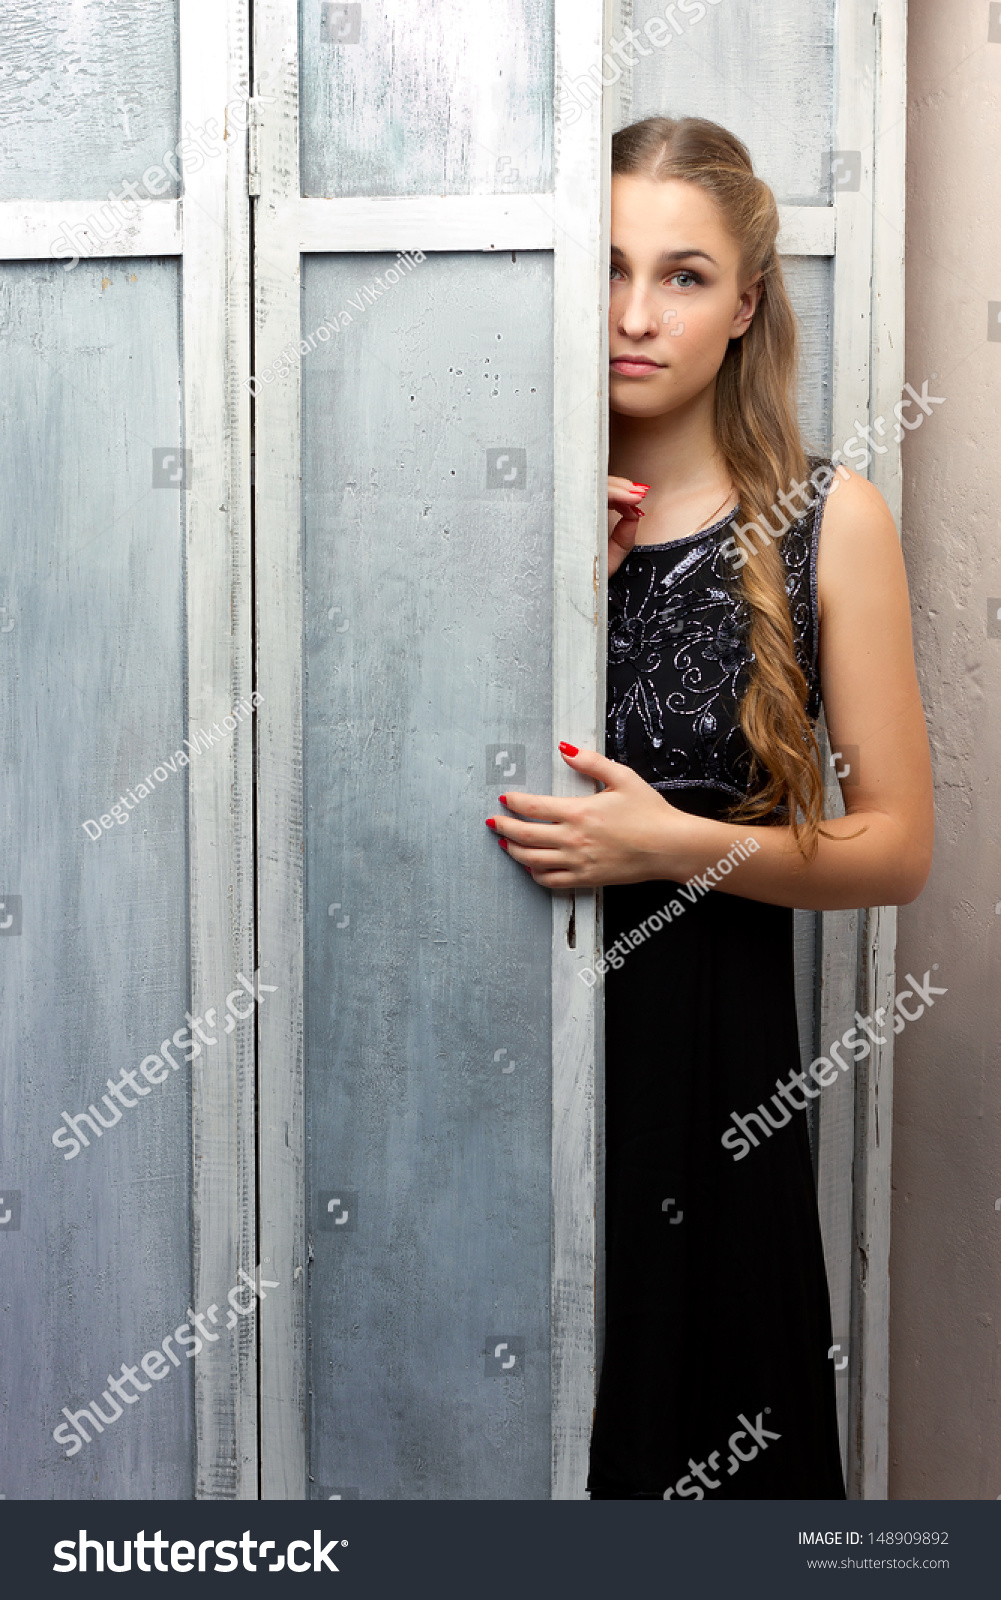 girl looks out from behind the cabinet door